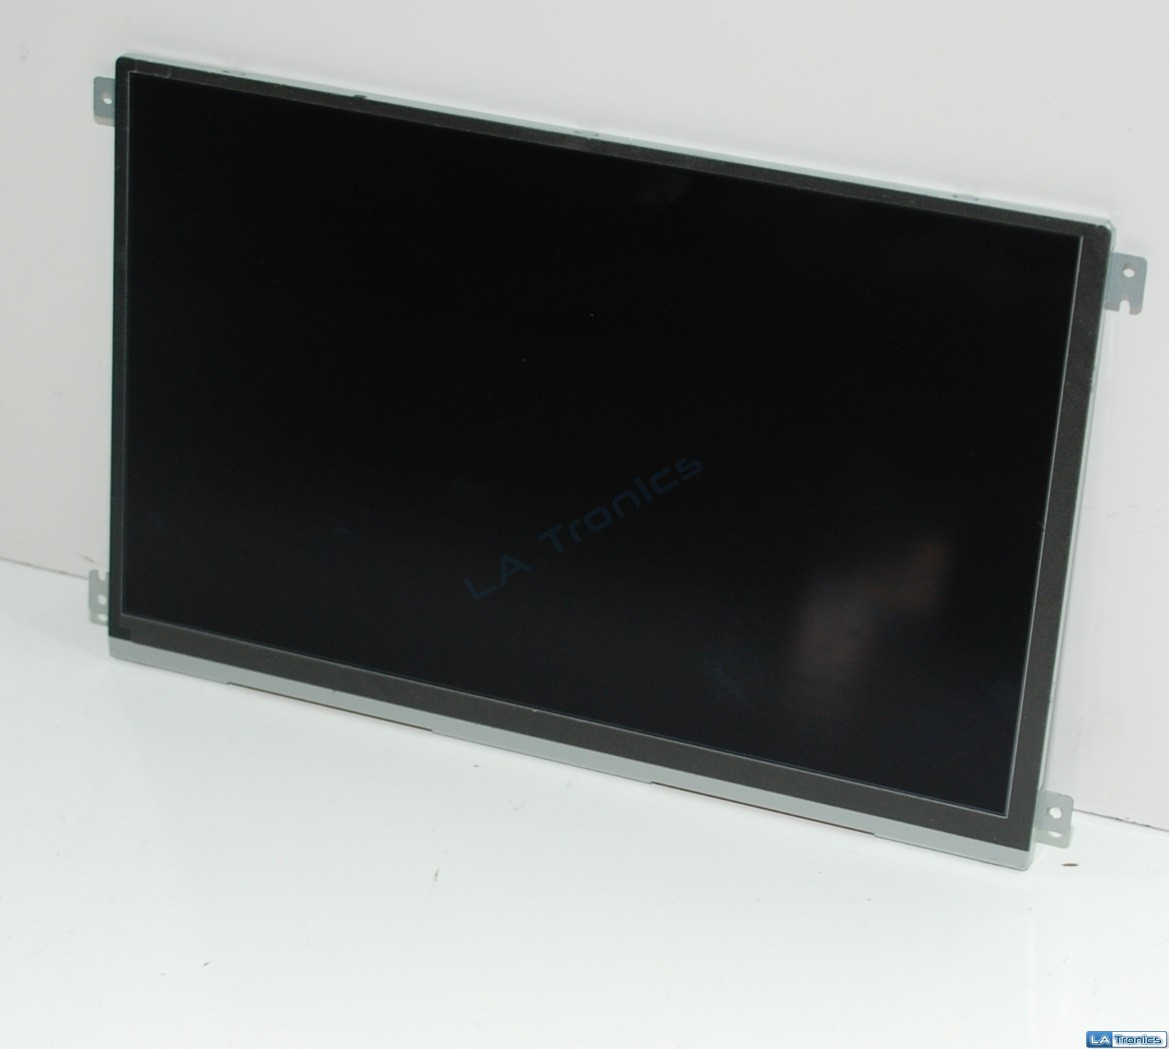 "Genuine Rim Blackberry Playbook OS 4460 7"" Glossy LCD Screen 18D411212BC2B04"